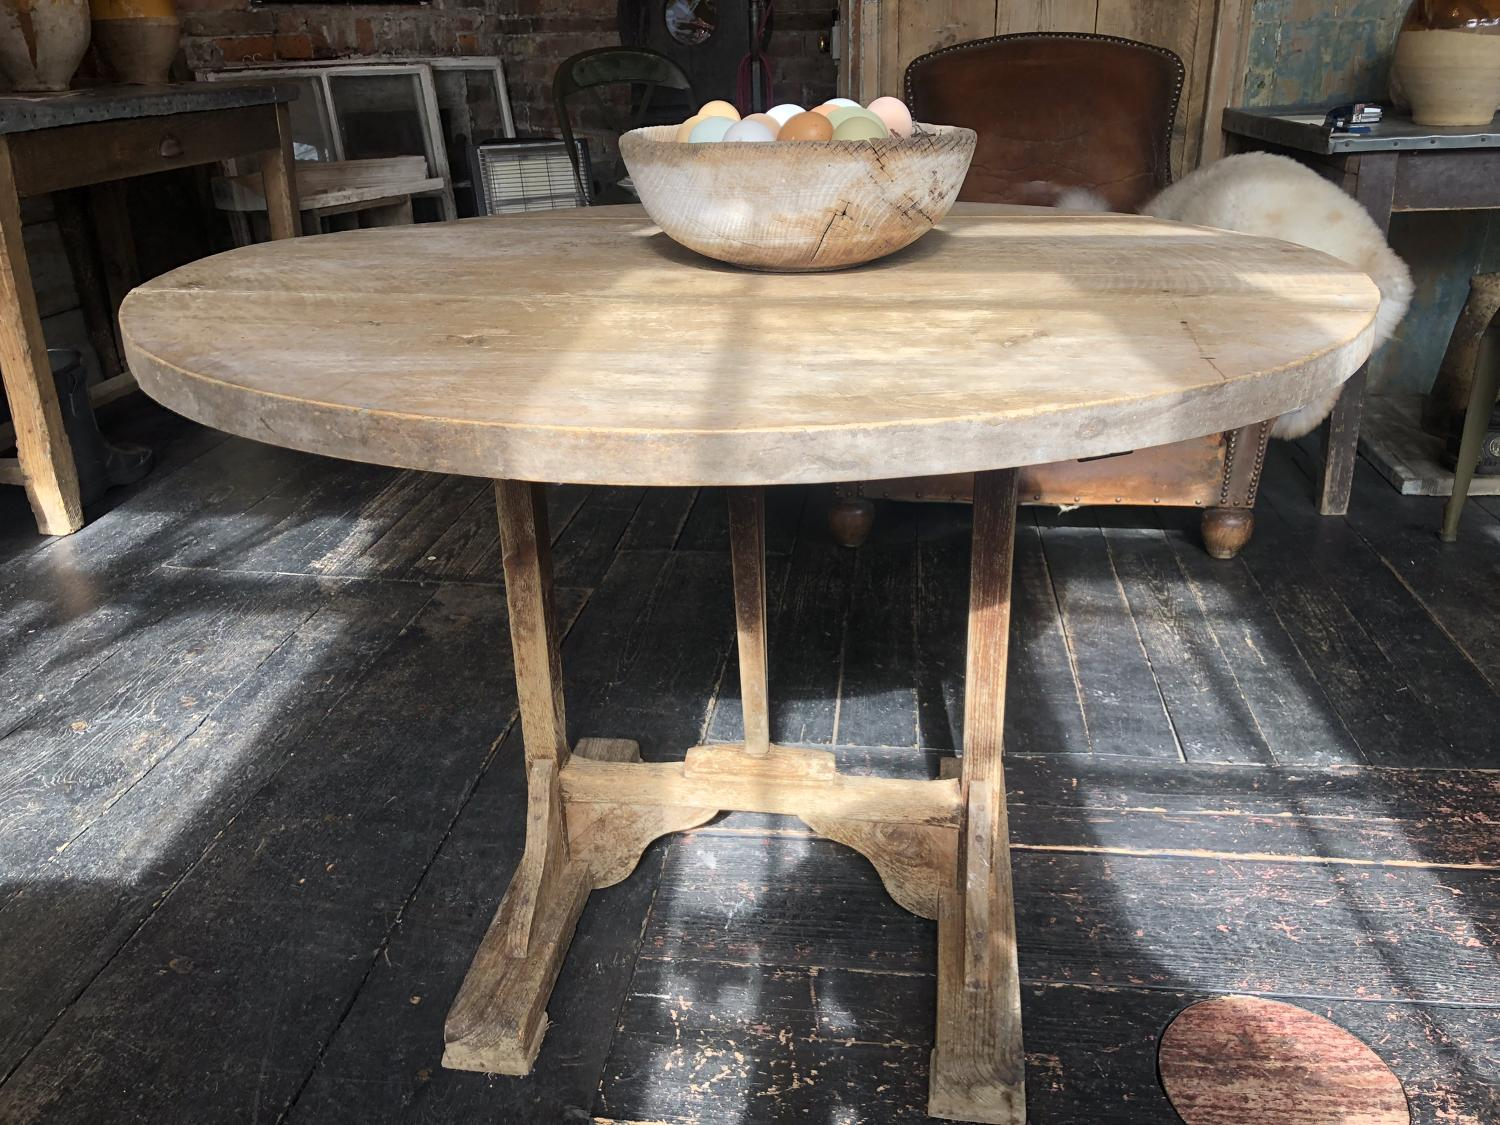 19th C Grape harvest Vendange table in untouched condition